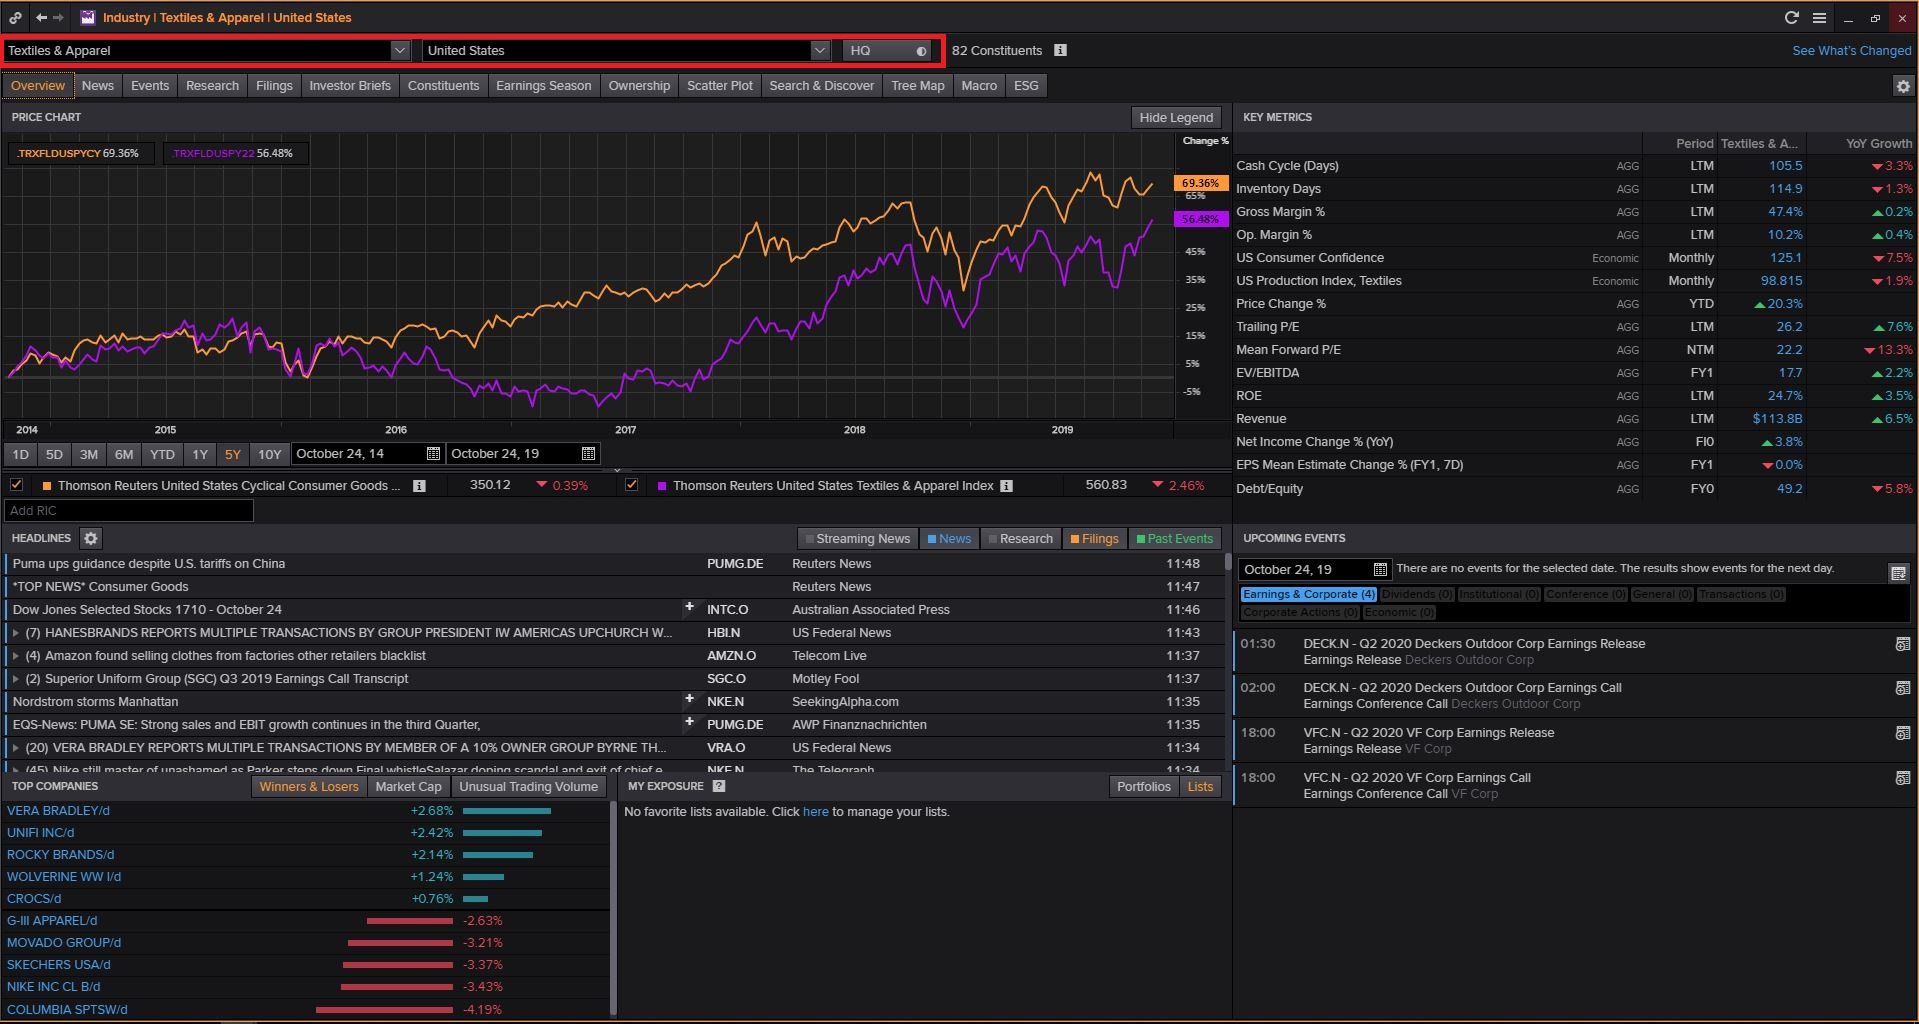 Login to Thomson Reuters Eikon (Available Only in Library) then Type INDUS and Search and Select Consumer Cyclicals and Click on Cyclical Consumer Products and Click on Textiles & Apparel and Select Country